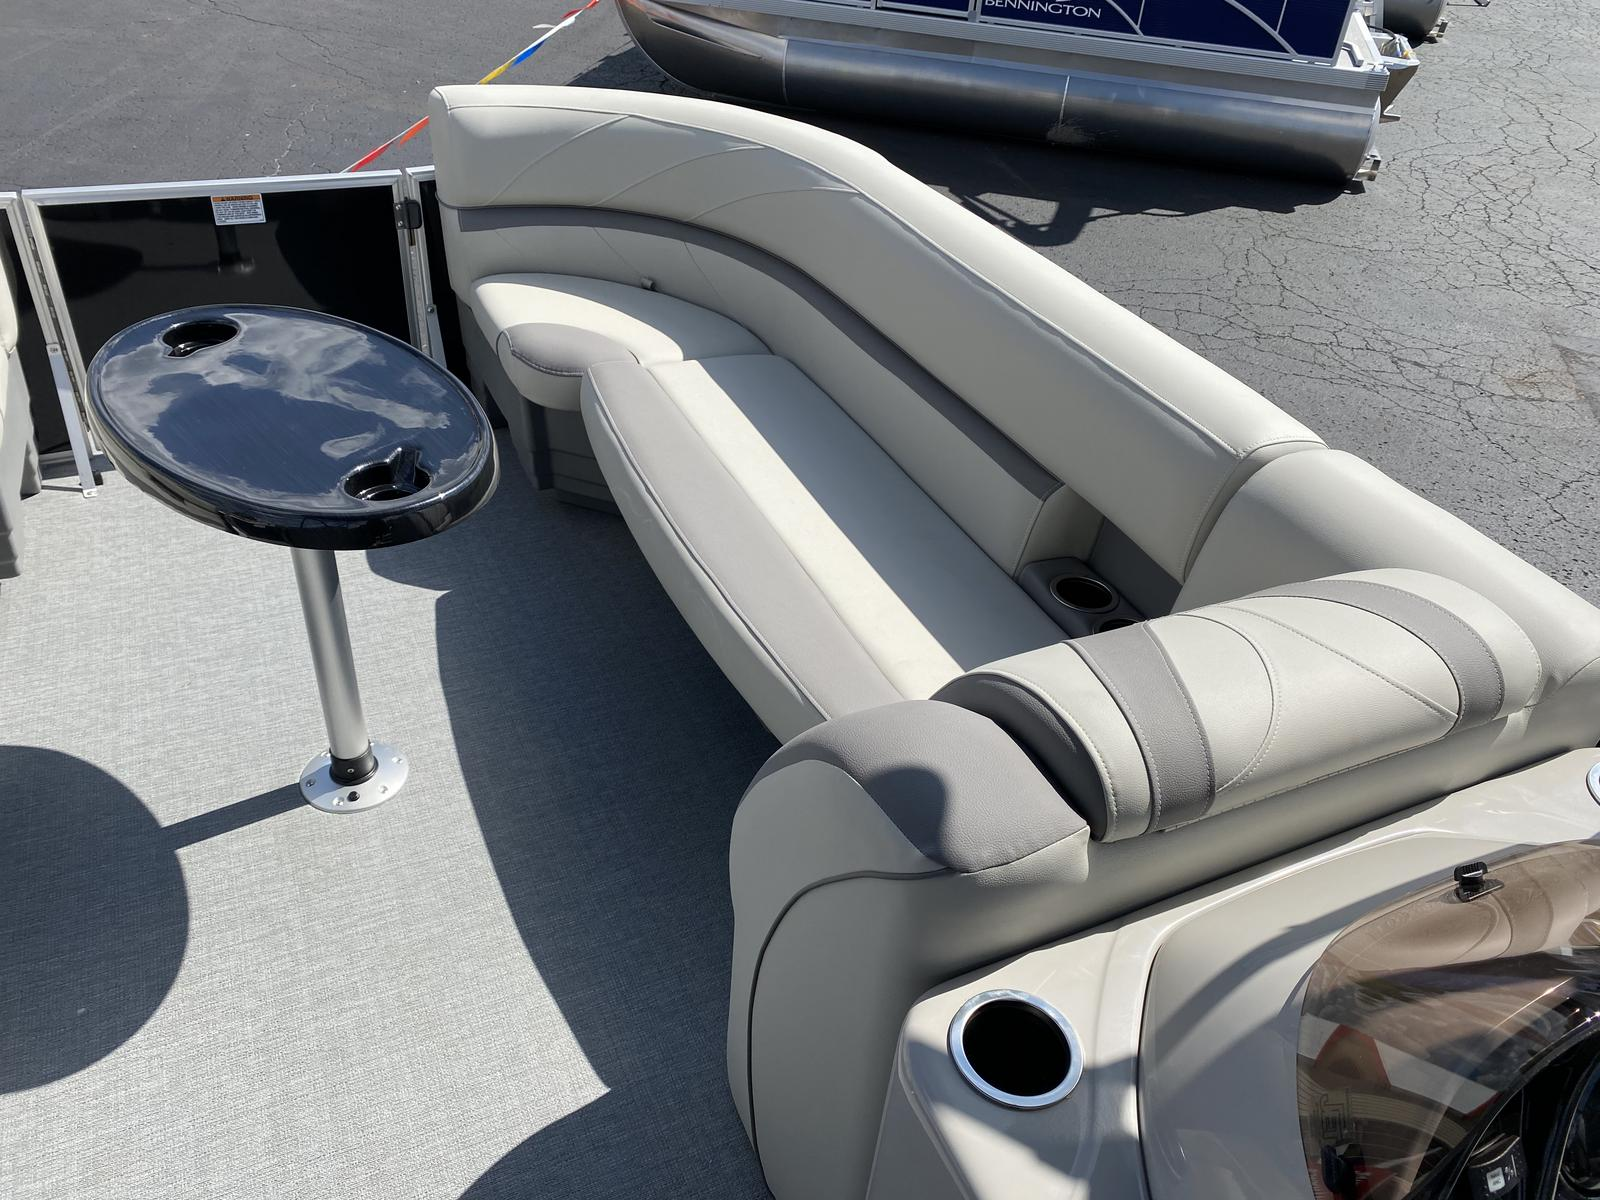 2020 SunChaser boat for sale, model of the boat is Geneva Fish 22 Fish DLX & Image # 4 of 19